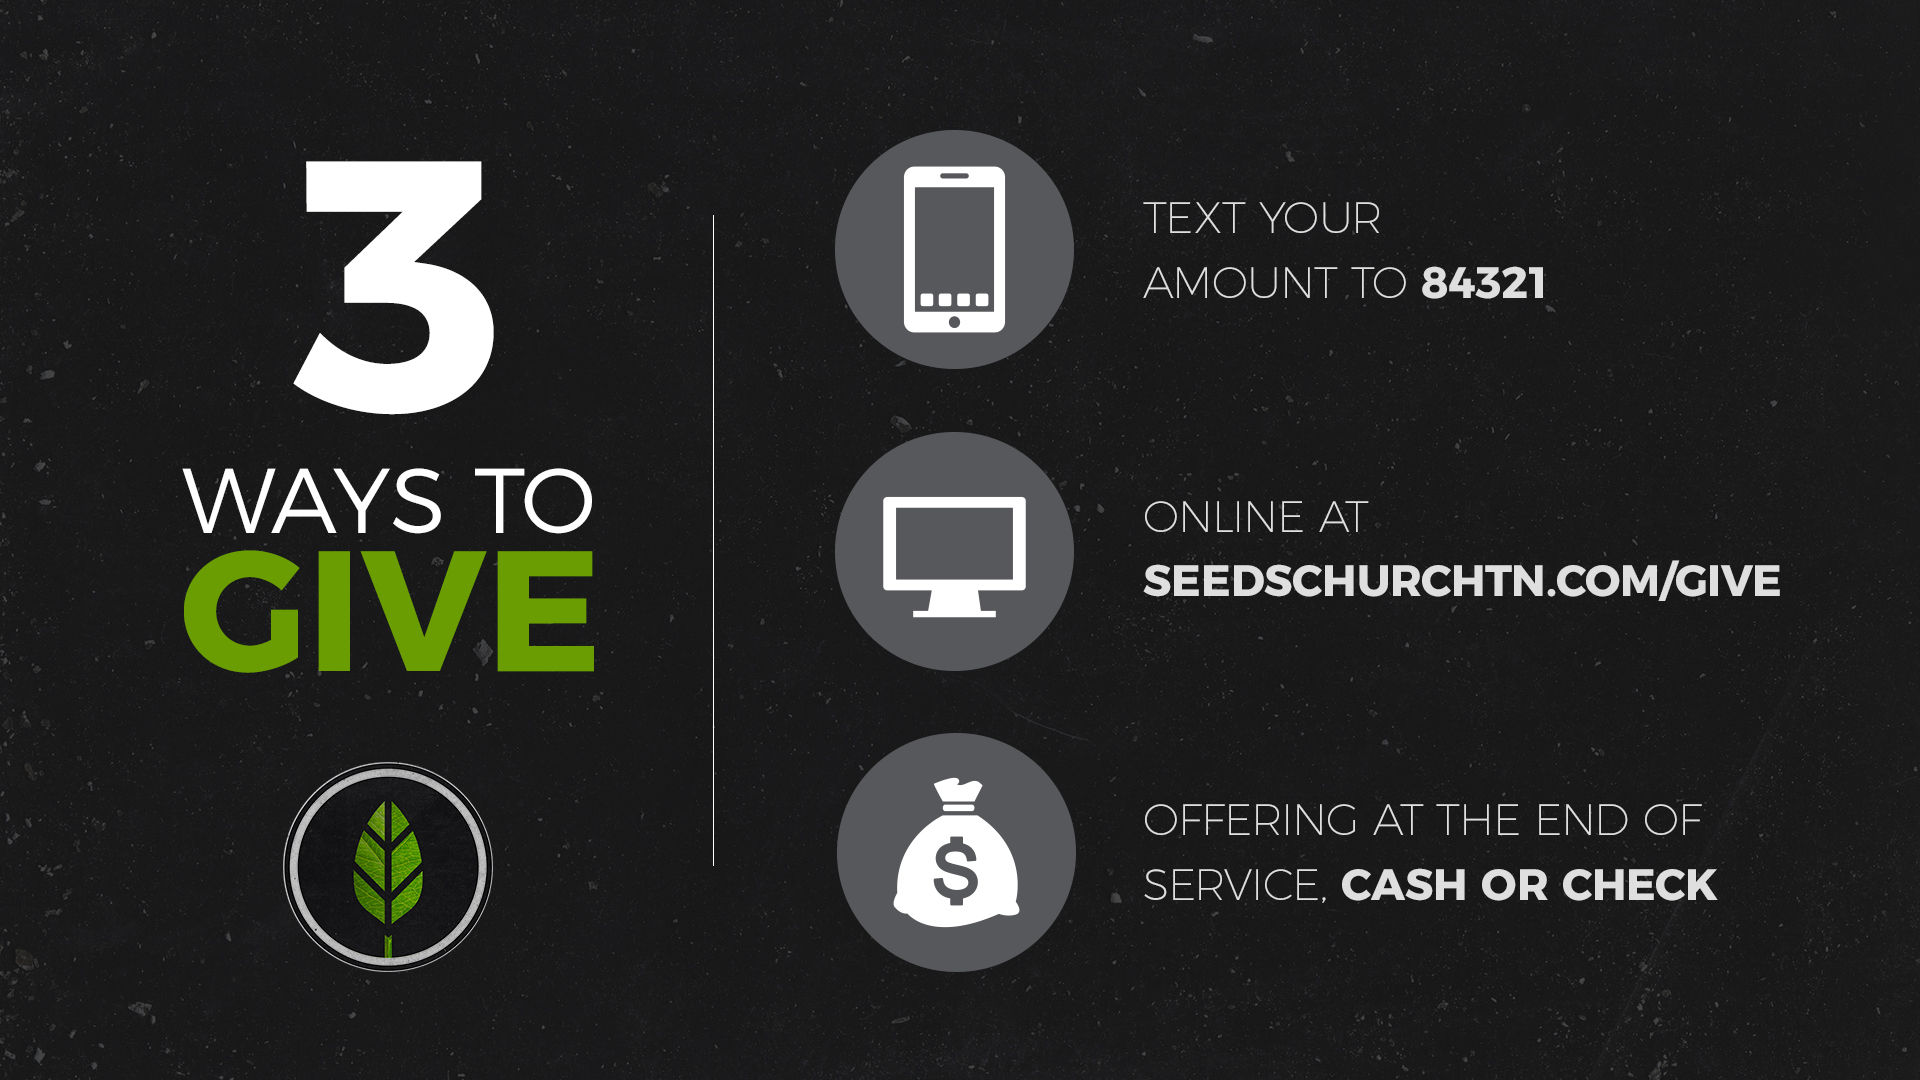 If you'd rather mail a check, please make checks payable to: Seeds Church PO Box 331485 Murfreesboro, TN 37133